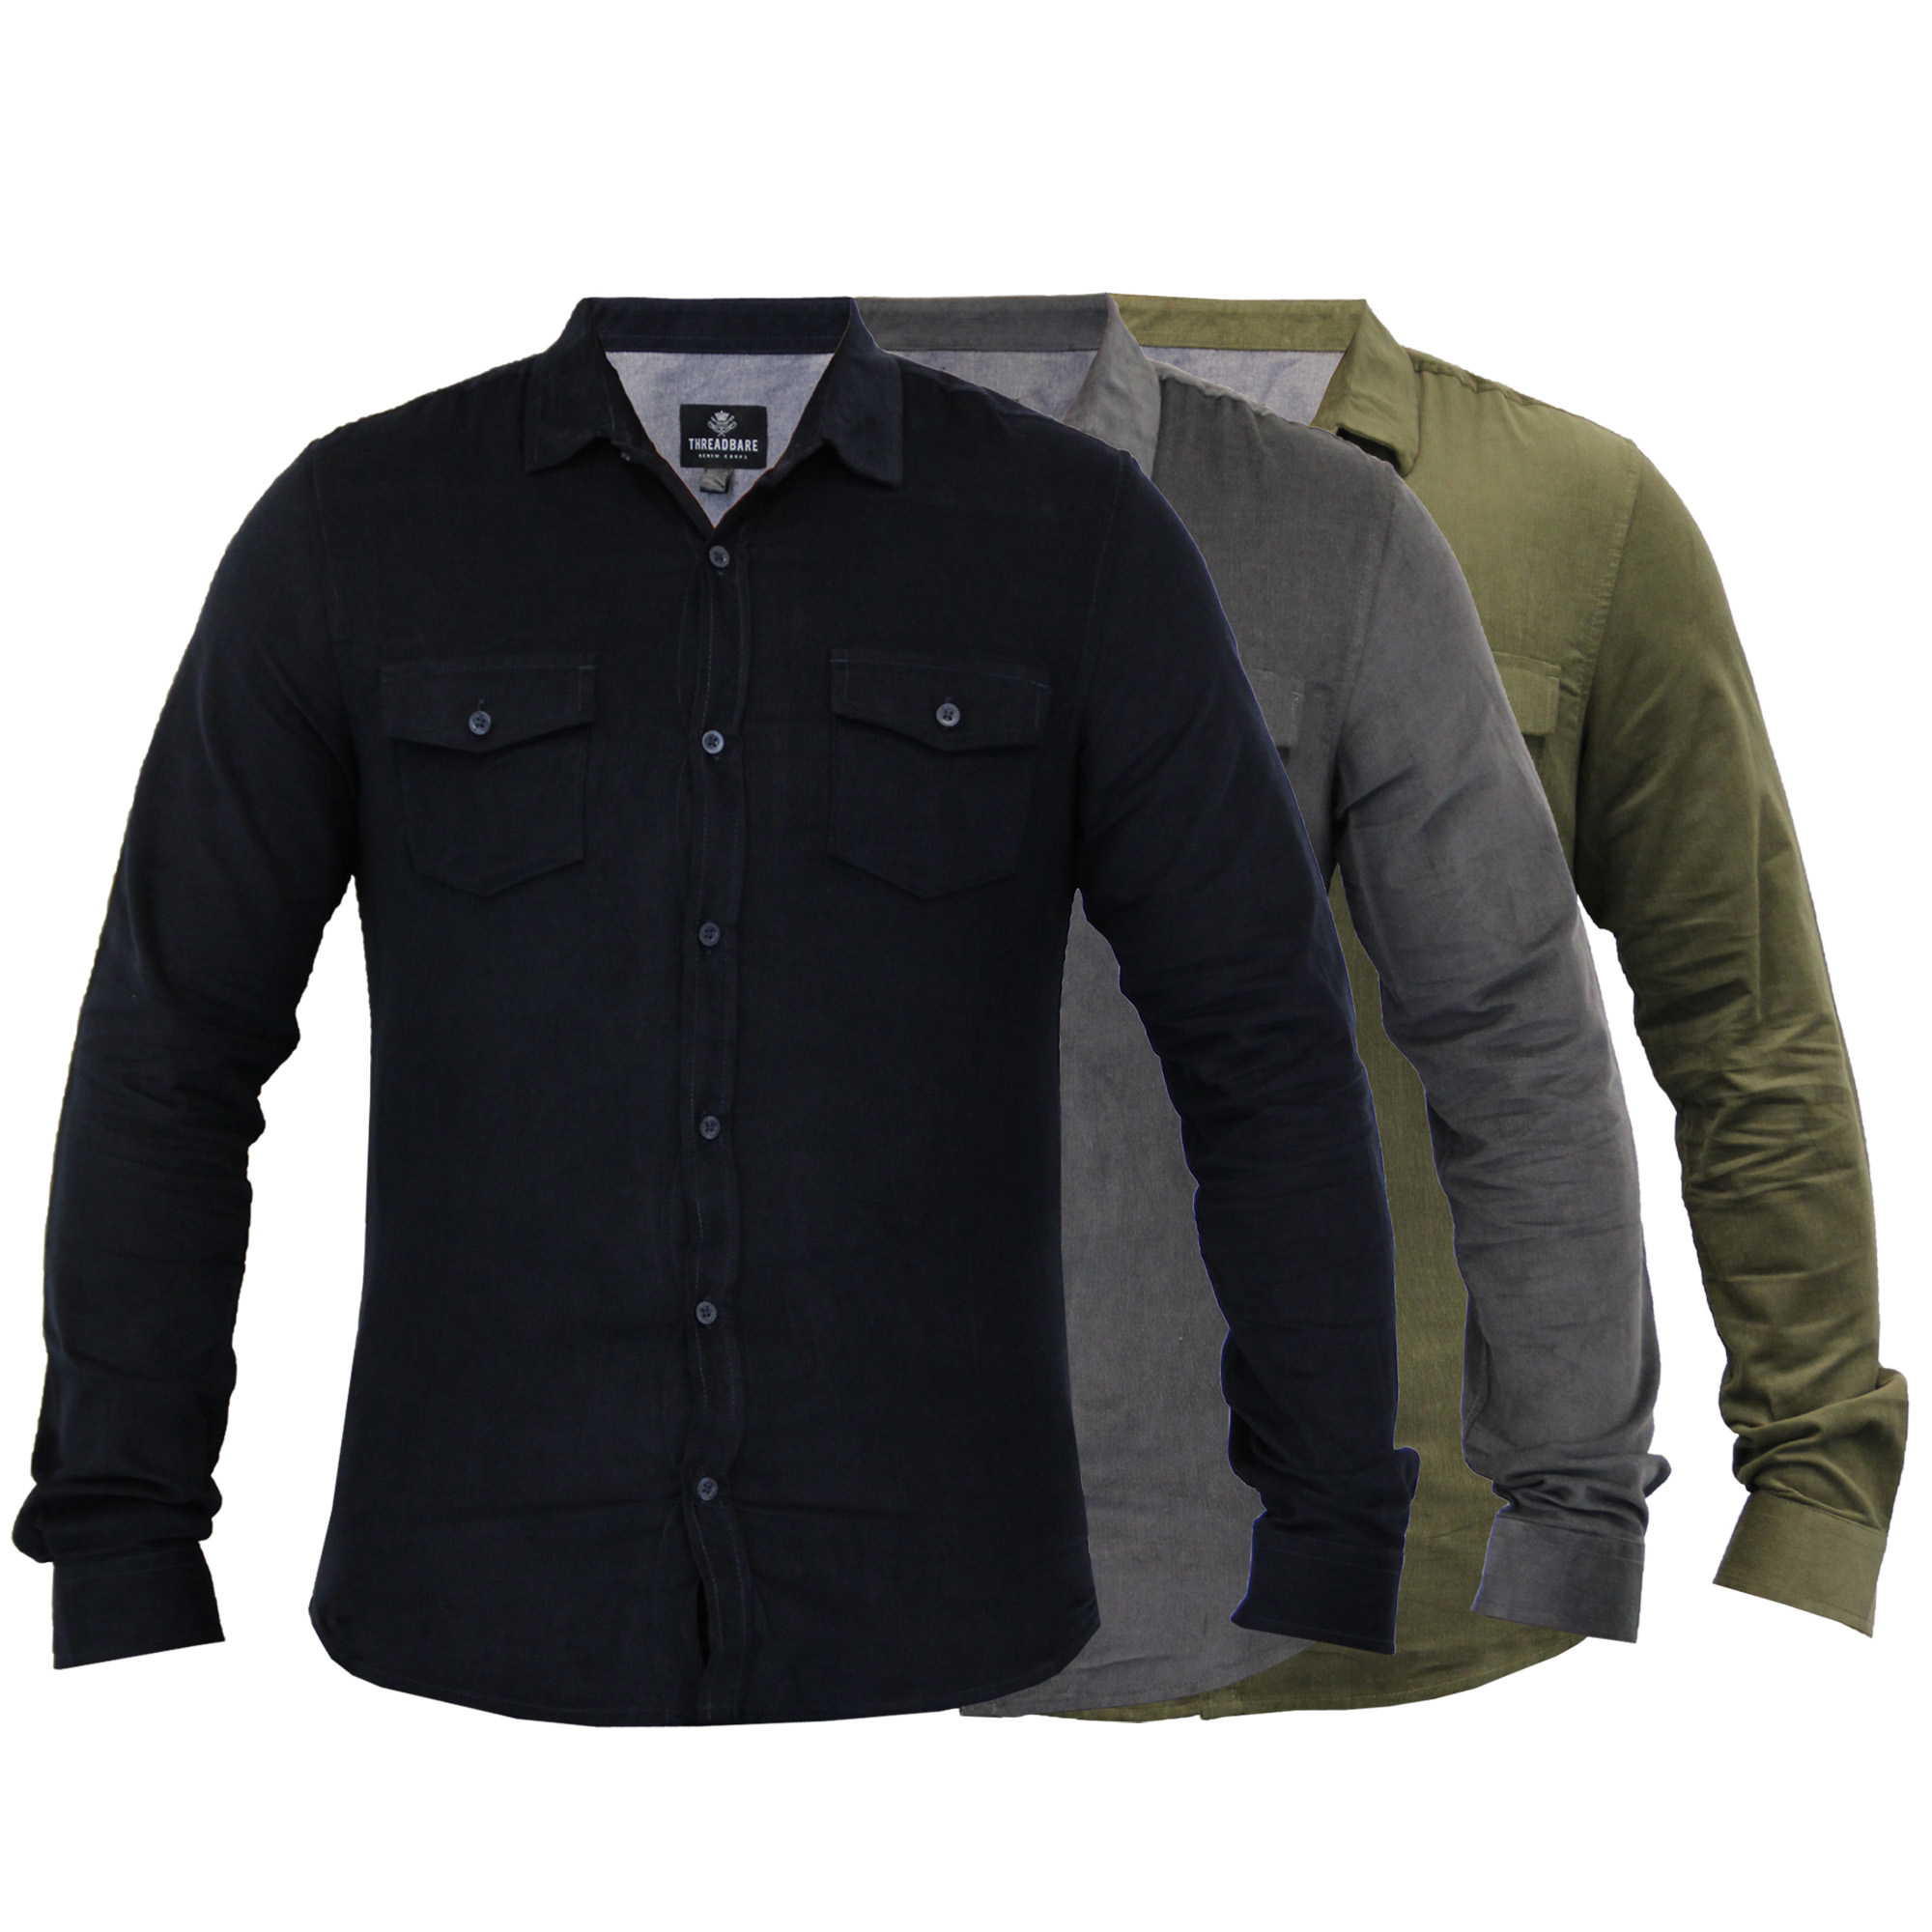 Point Collar Dress Shirts for Men at Macy's come in a variety of styles and sizes. Shop top brands for Men's Dress Shirts and find the perfect fit today.